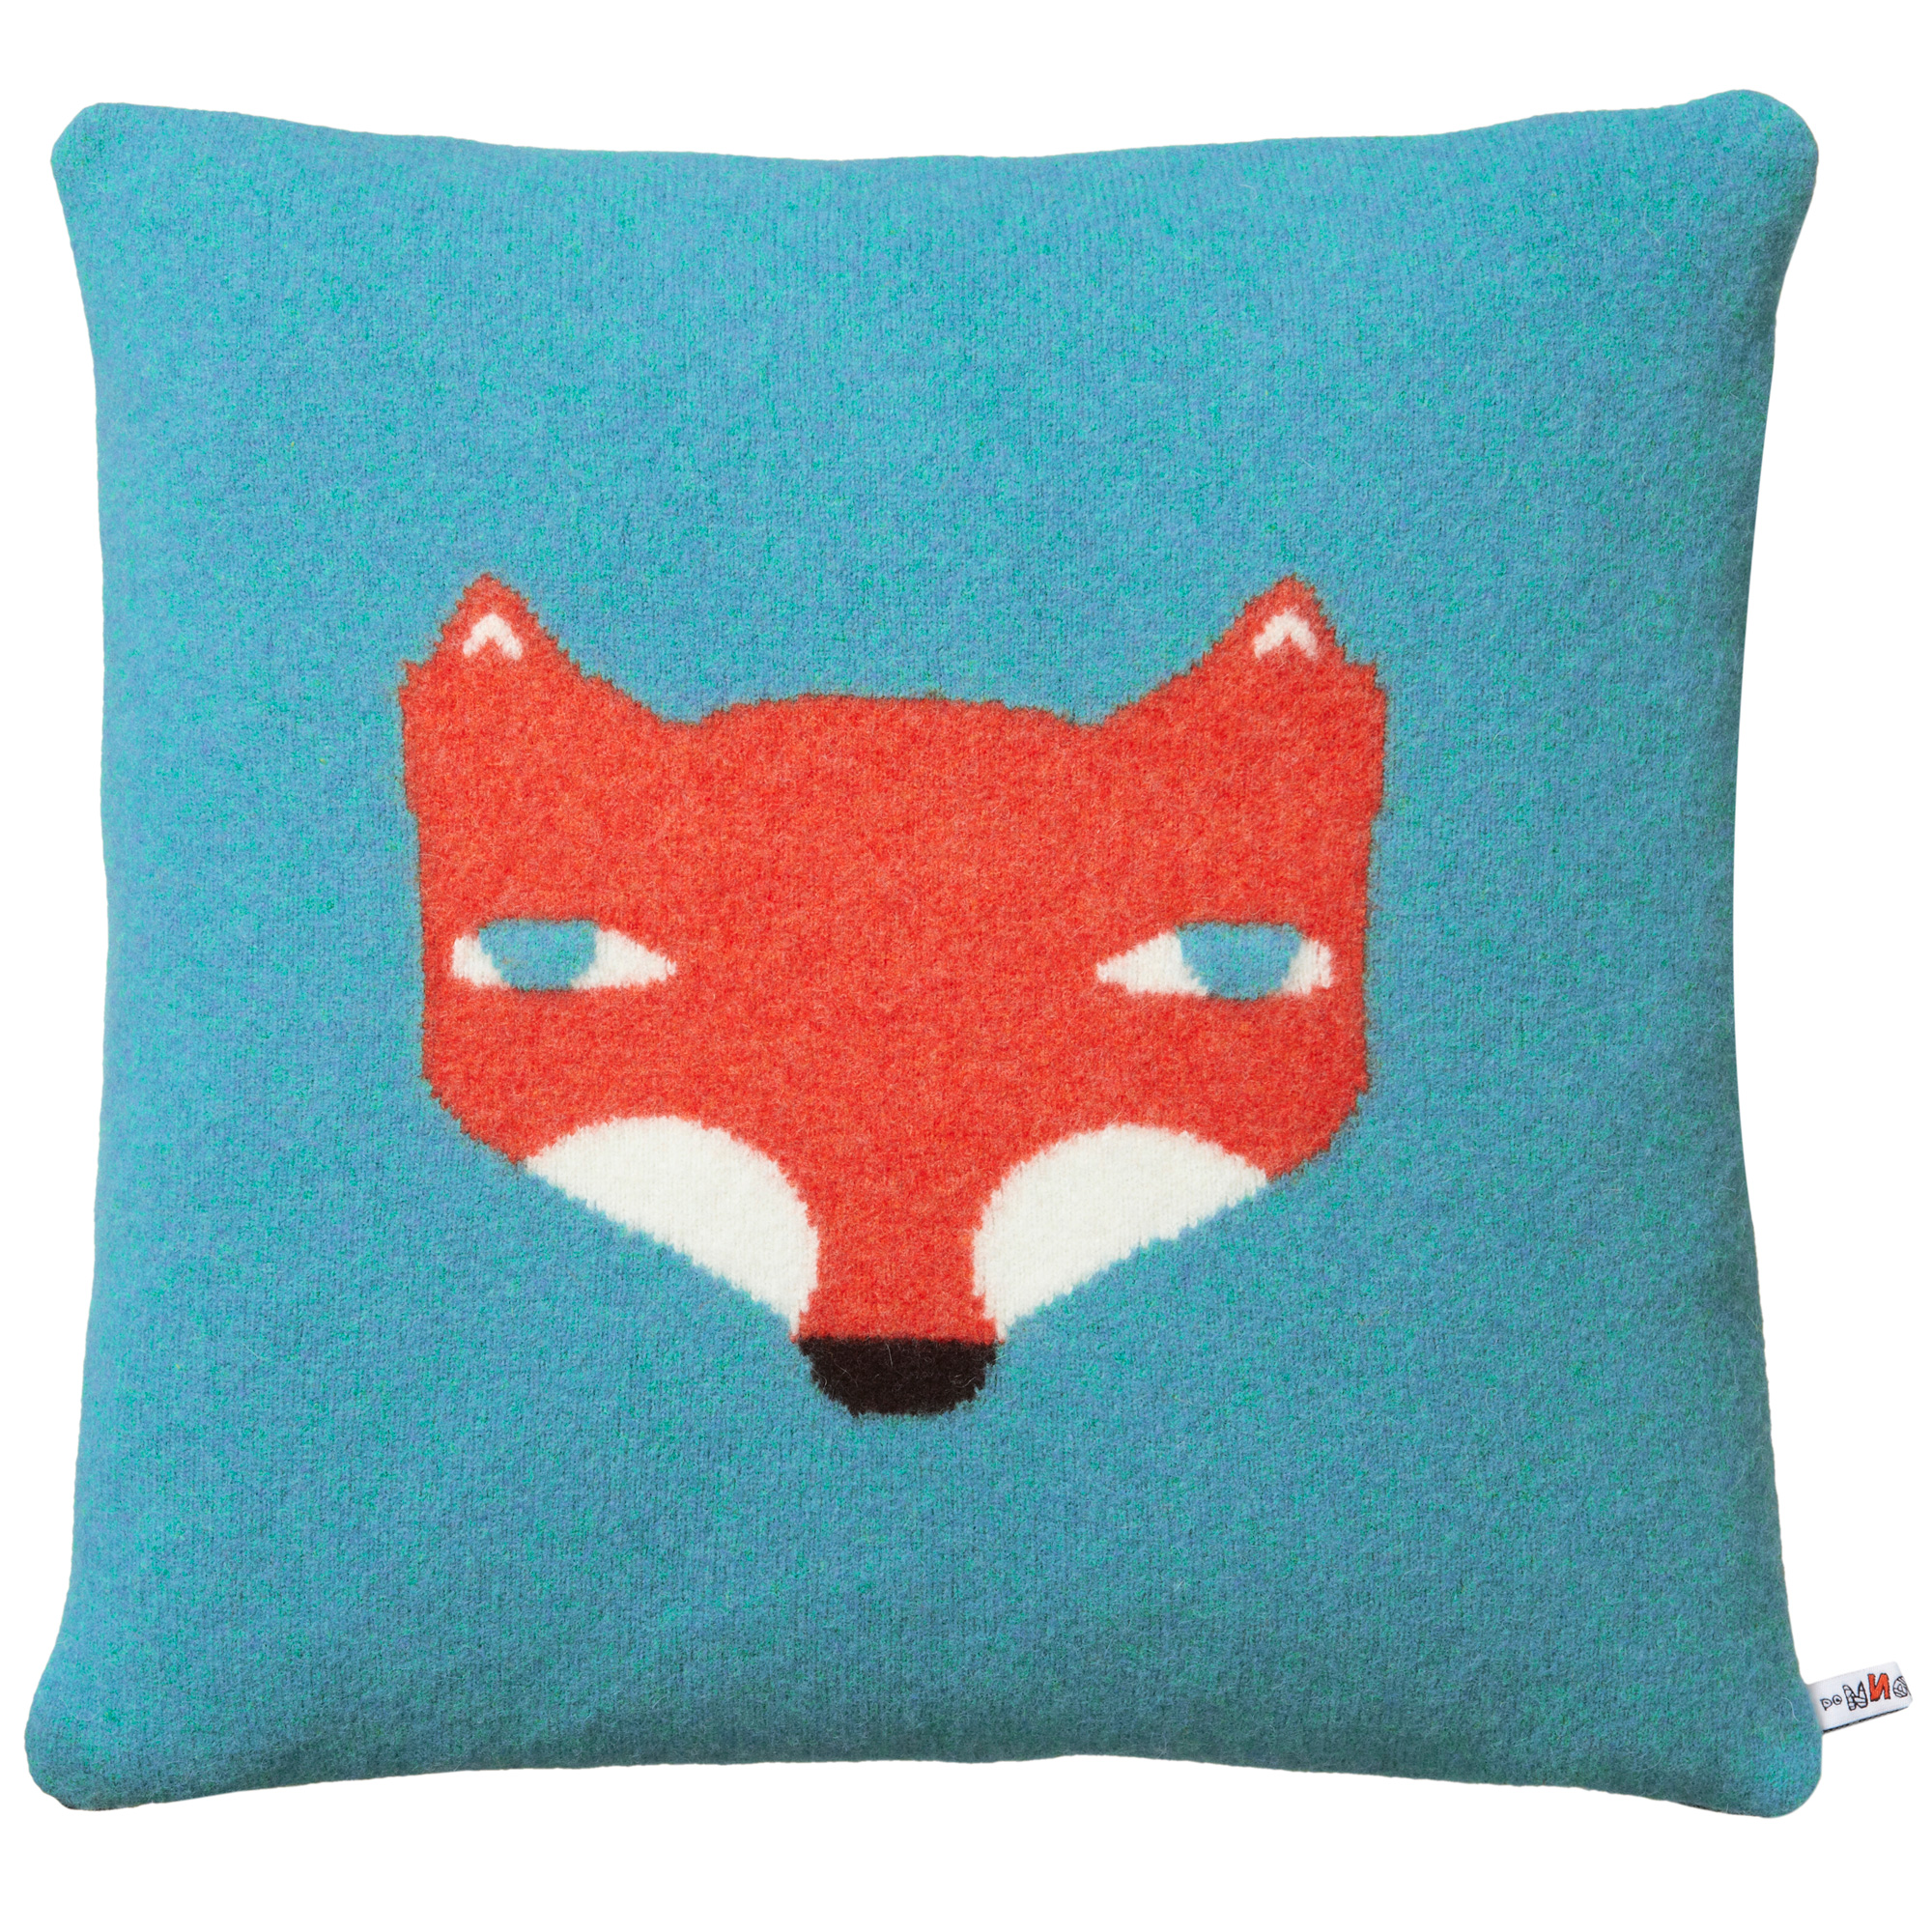 fox miss product christmas case pillows for jolly cushion cover pillow